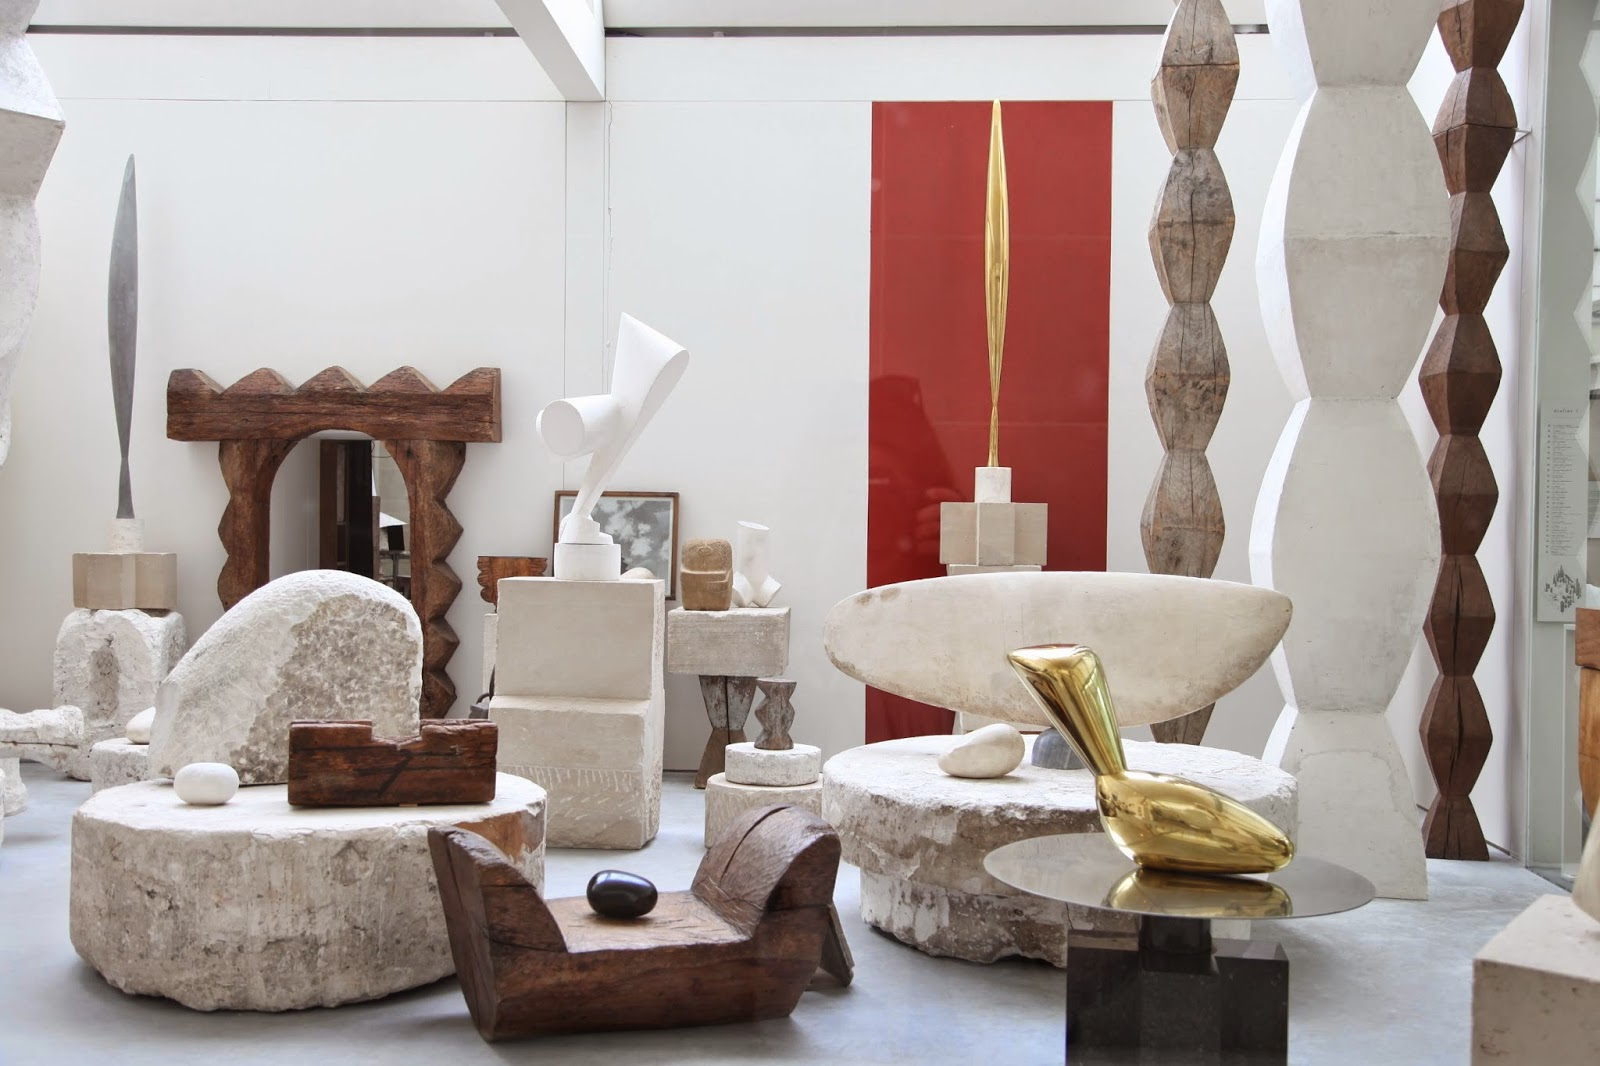 Atelier Brâncusi, Centre Pompidou, Paris – An exact reconstruction of his studio, housing his collection entrusted to the French state in 1957